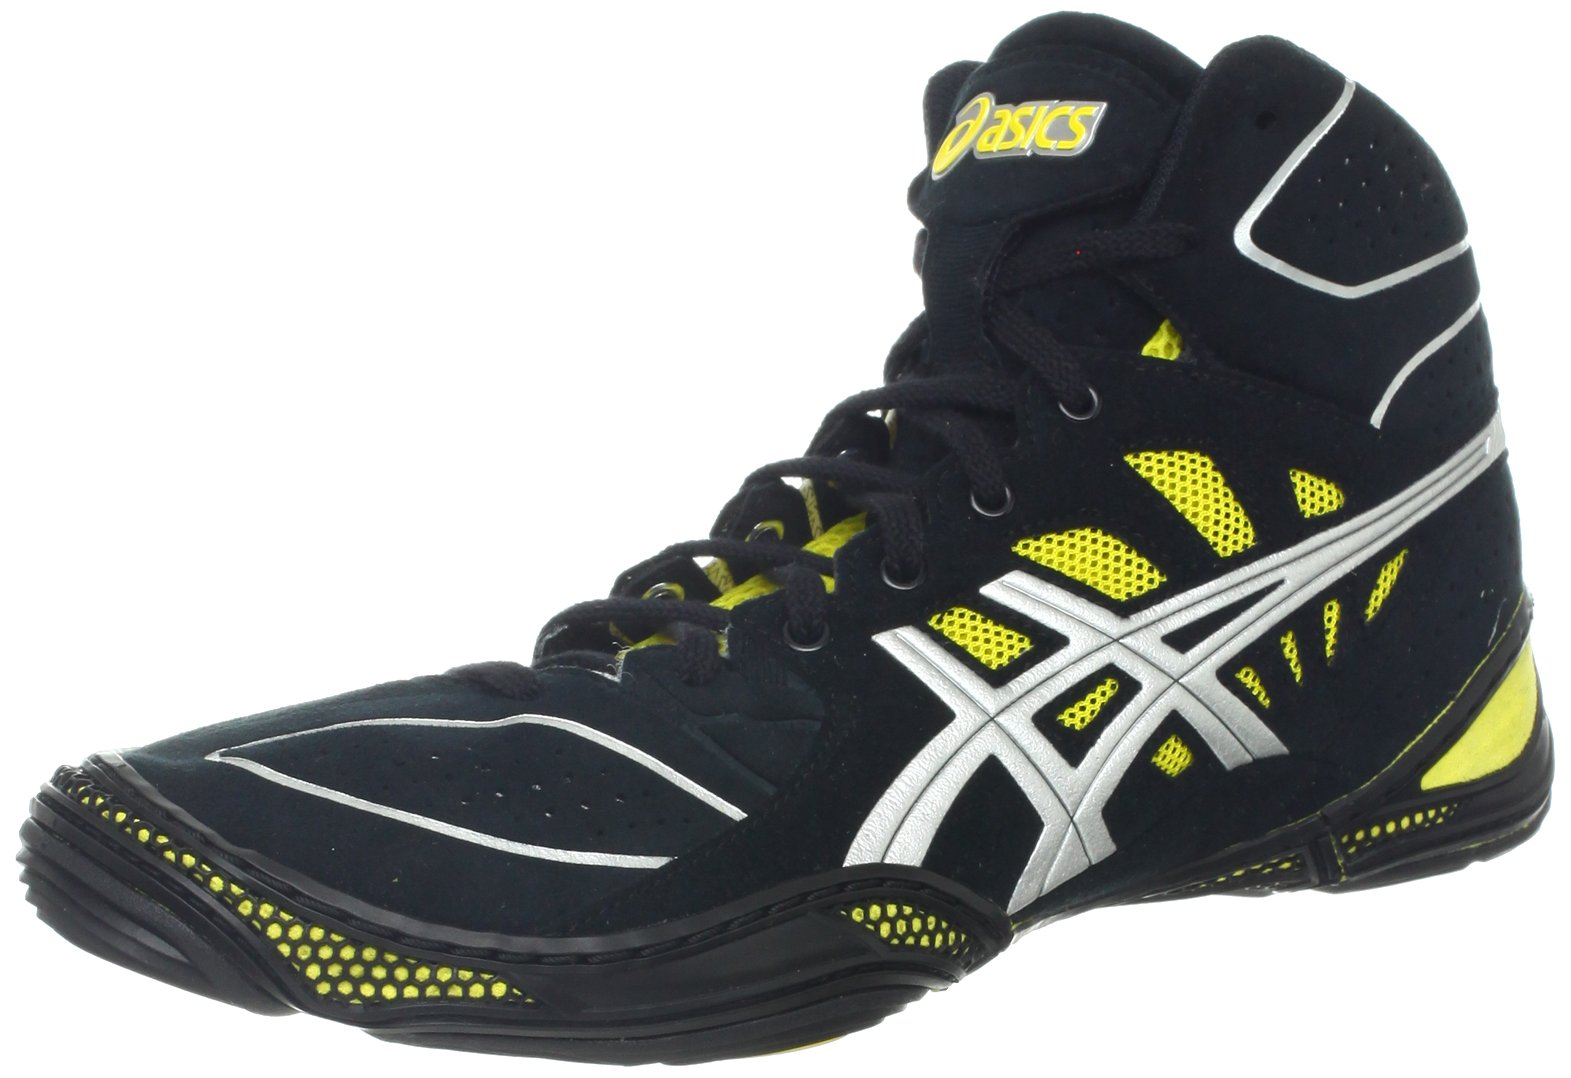 ASICS Men's Dan Gable Ultimate 3 Black/Silver/Yellow Sneaker 10 D - Medium by ASICS